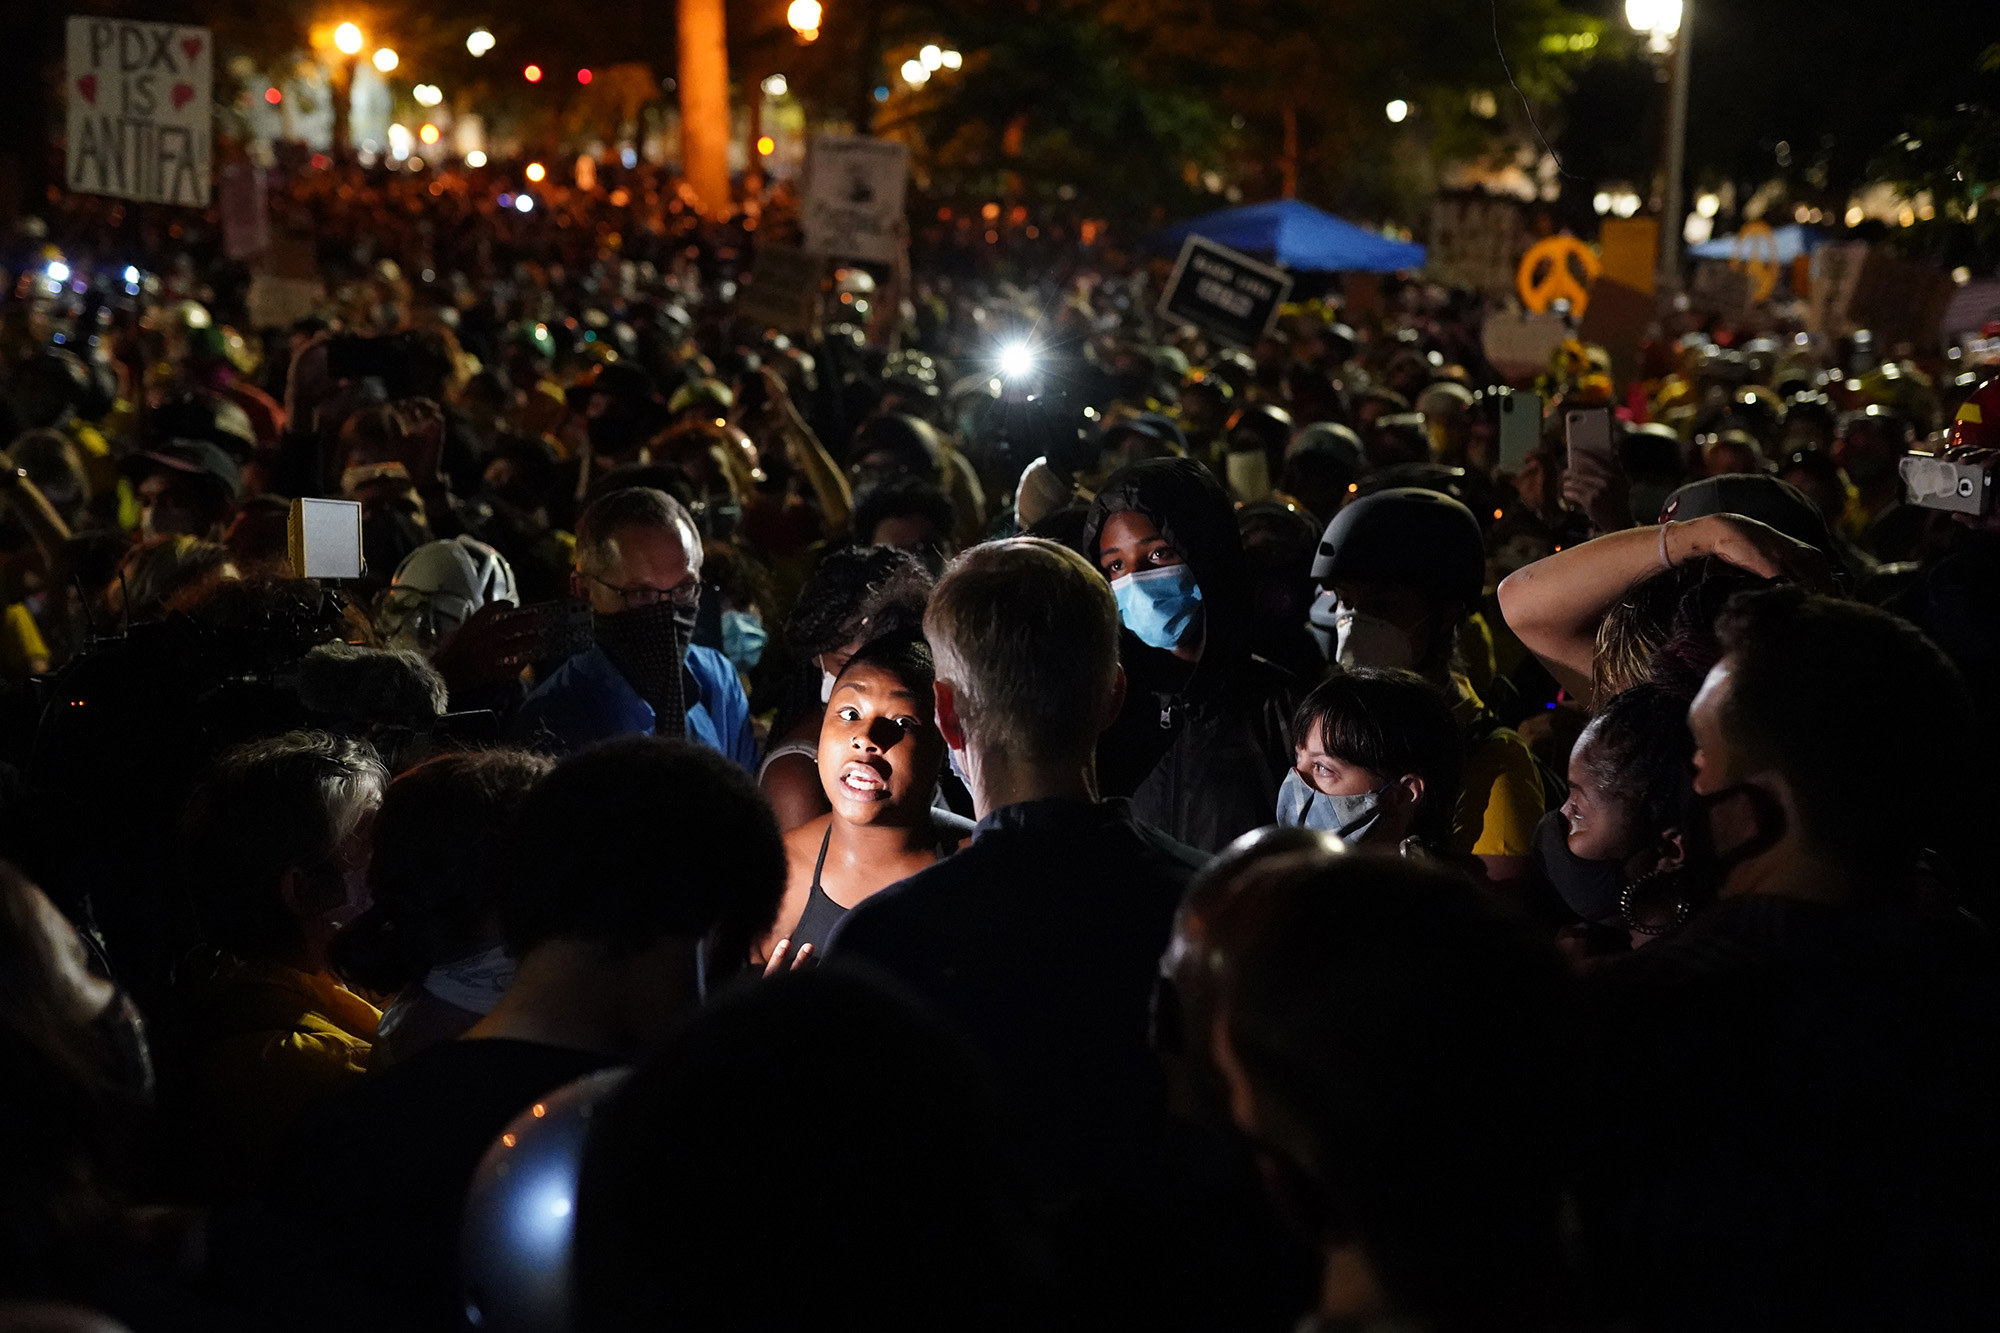 A protester illuminated by a camera flash speaks with Portland Mayor Ted Wheeler surrounded by a large crowd